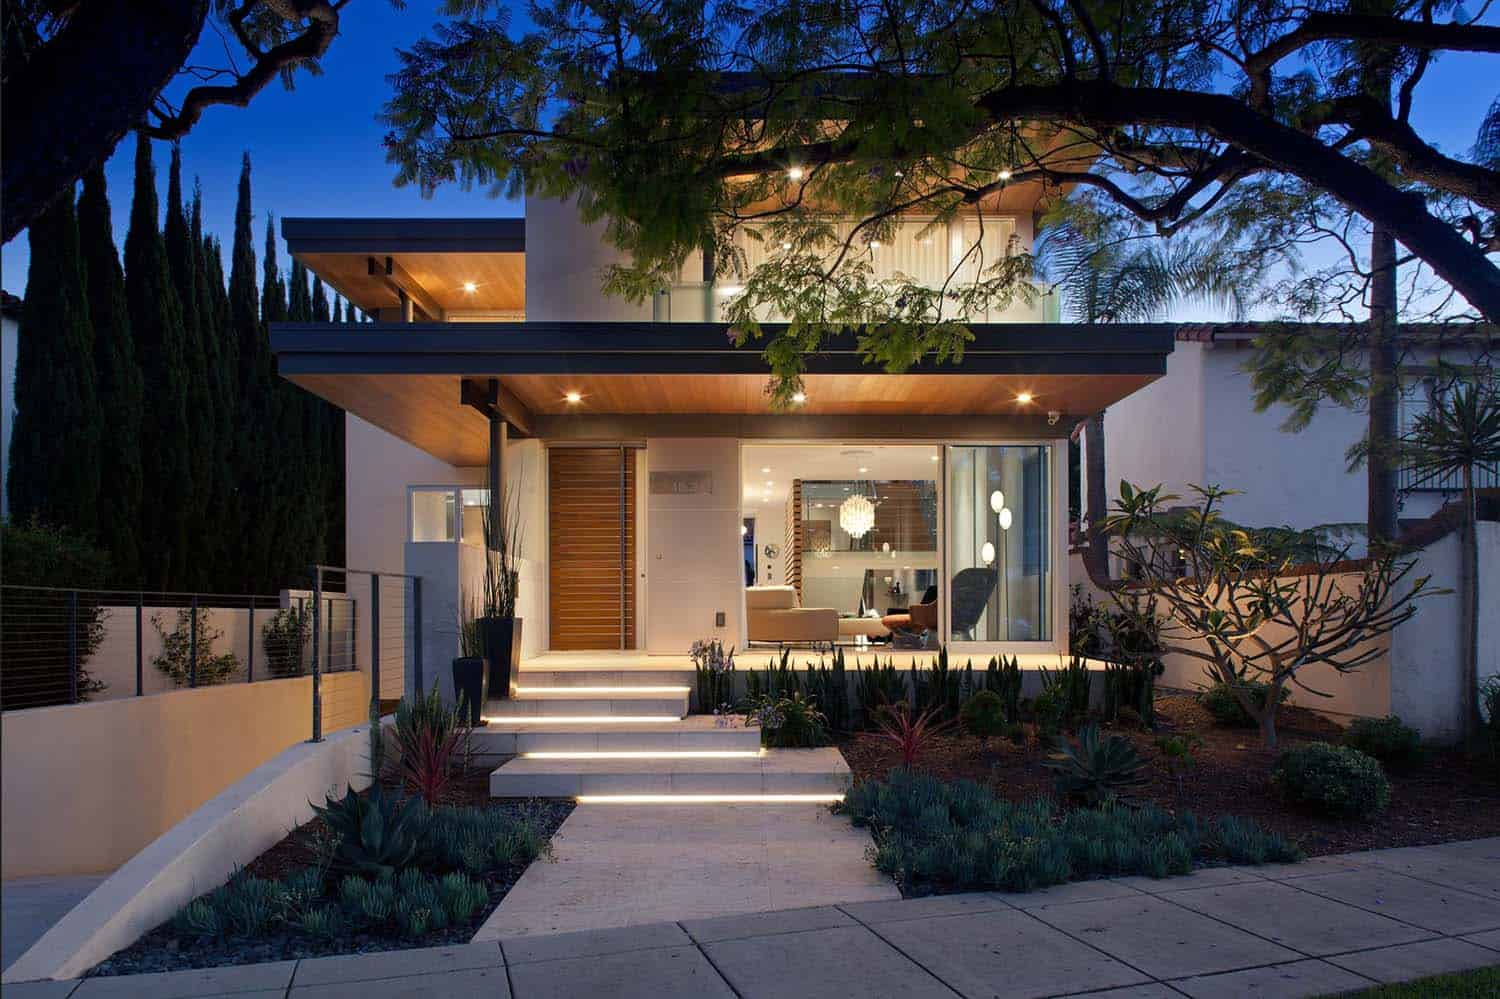 Southern california home features an elegant contemporary design - Ca home design ideas ...